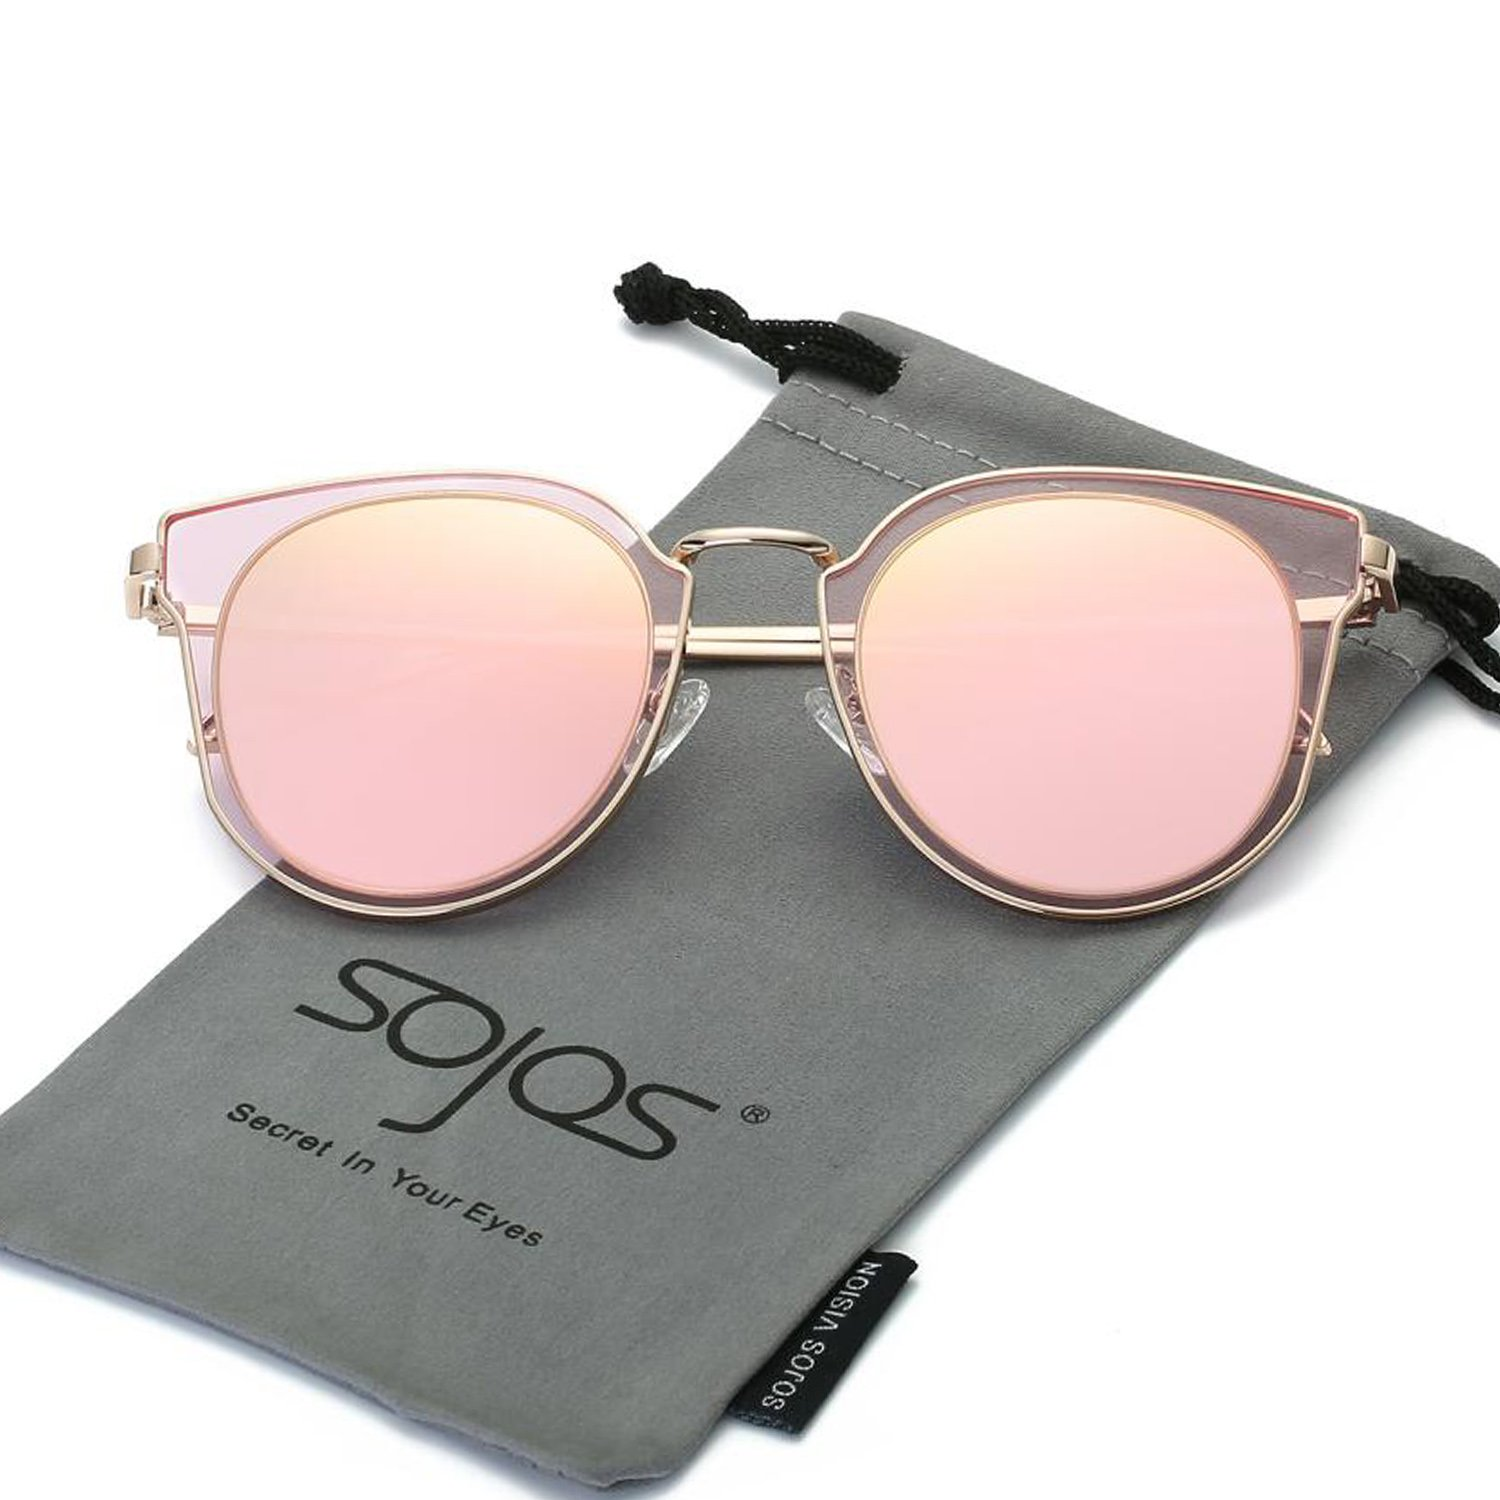 86206b5e20f Top 10 Best Polarized Sunglasses for Women 2018-2019 on Flipboard by ...